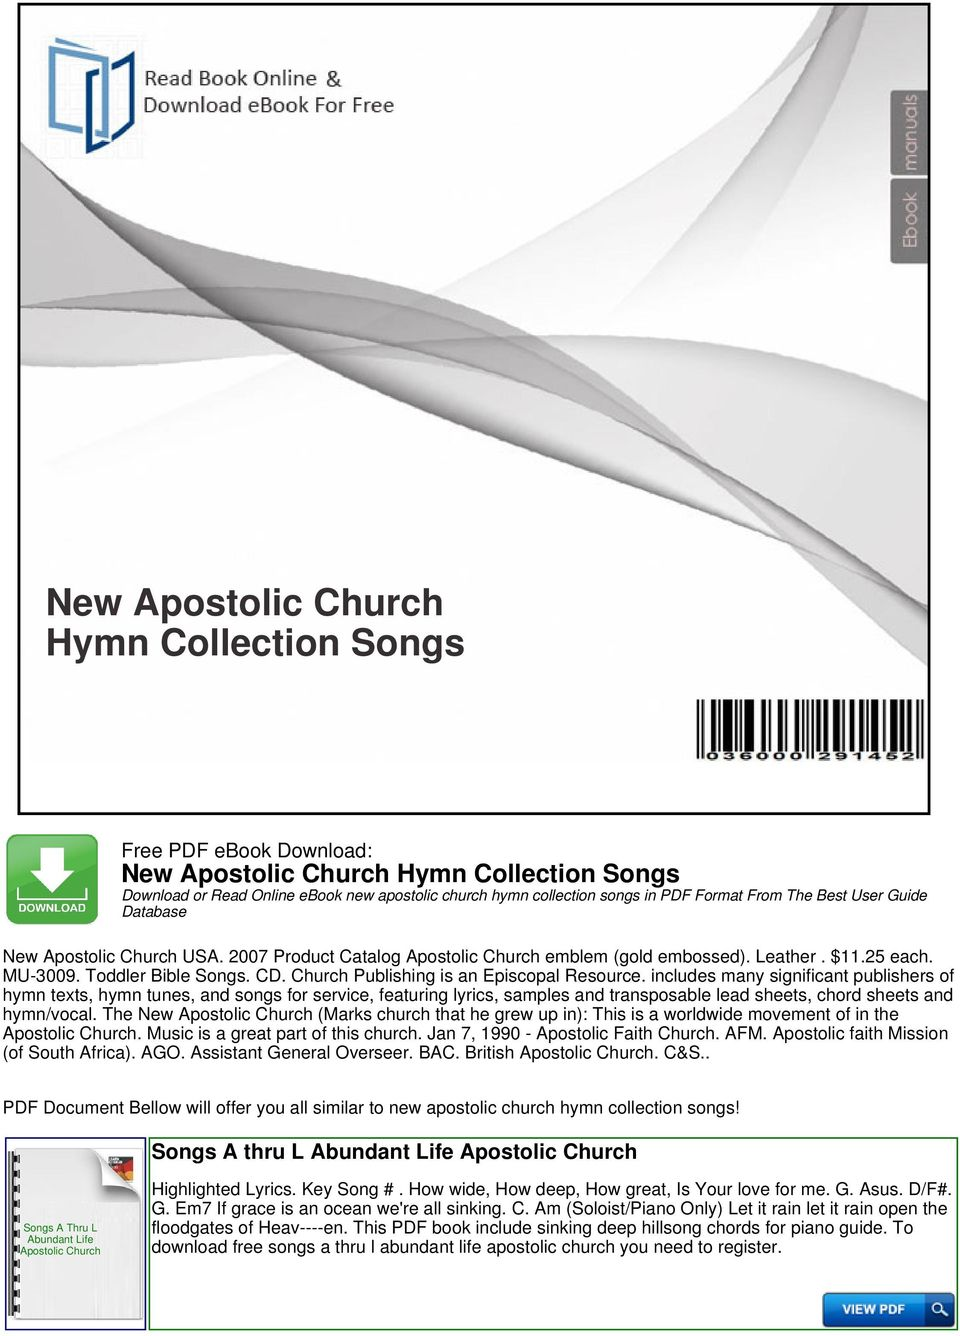 includes many significant publishers of hymn texts, hymn tunes, and songs for service, featuring lyrics, samples and transposable lead sheets, chord sheets and hymn/vocal.